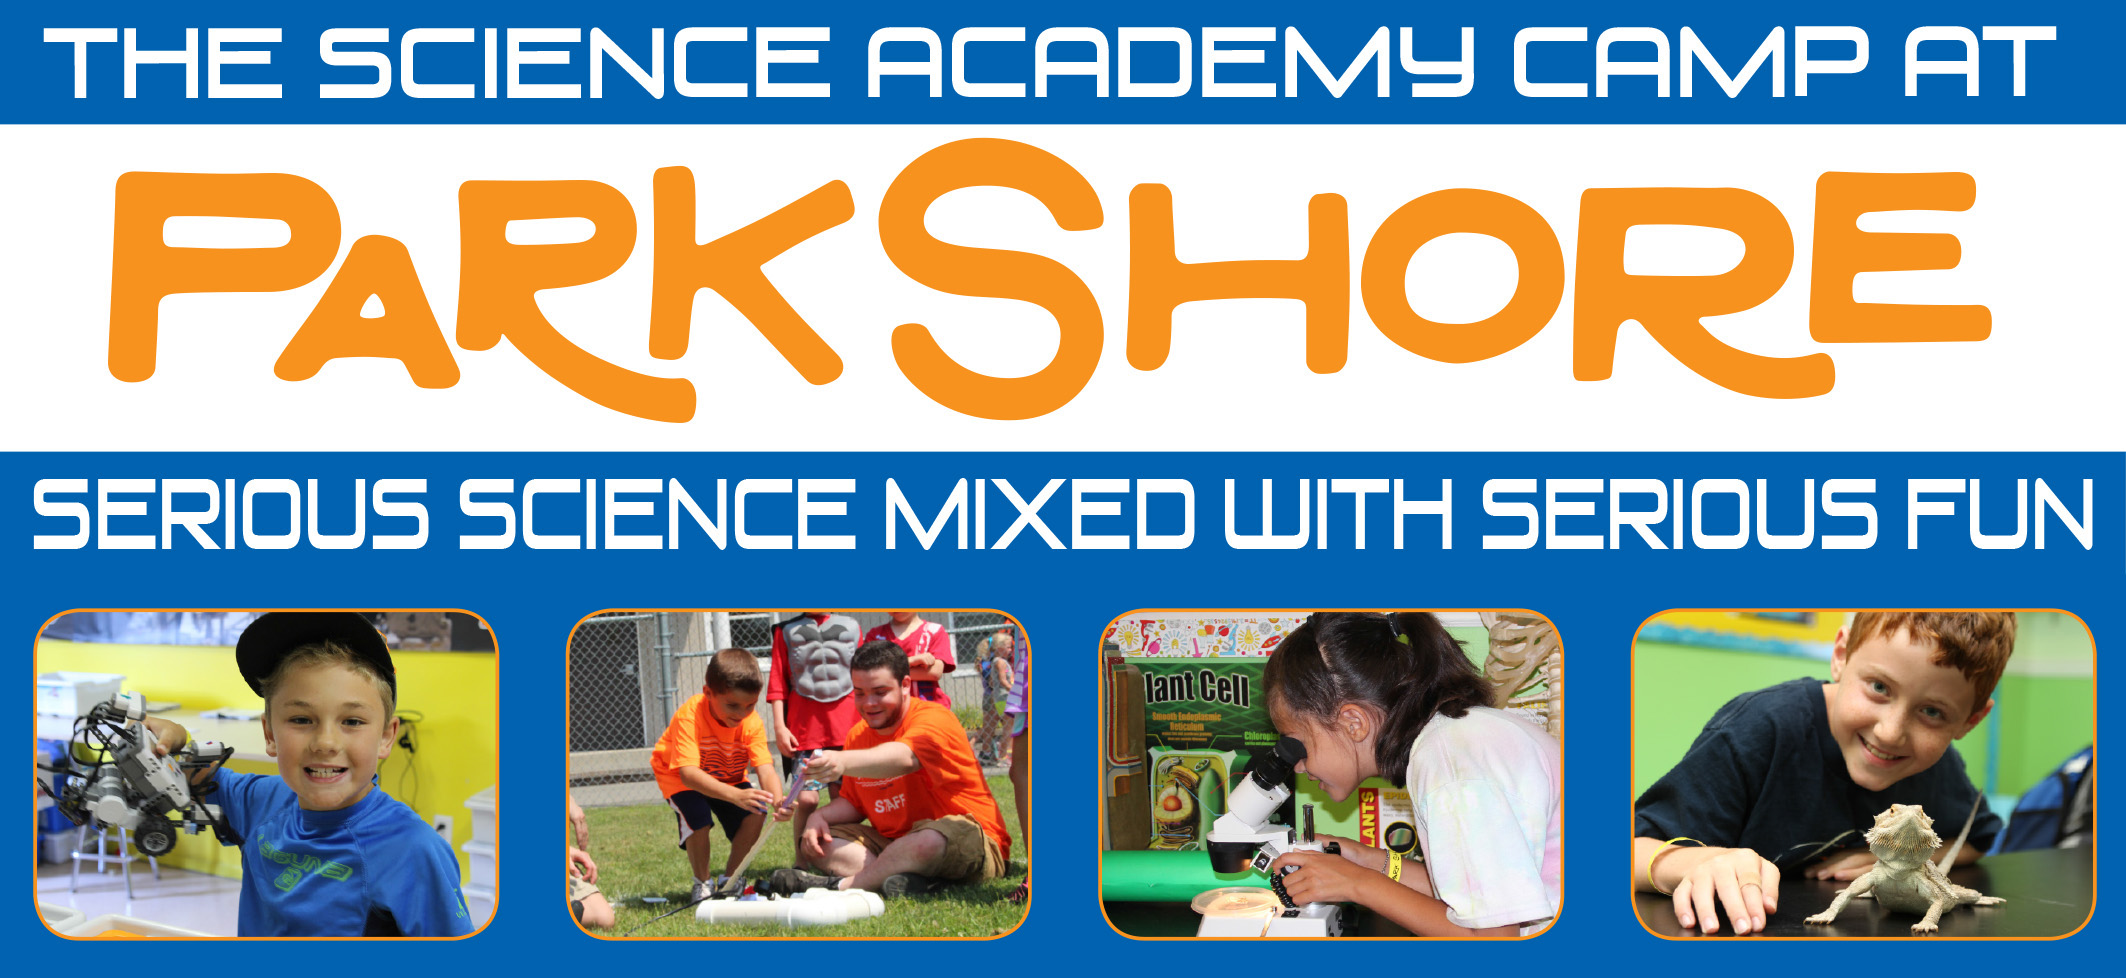 Science Academy Camp at Park Shore Day Camp of Long Island (The)